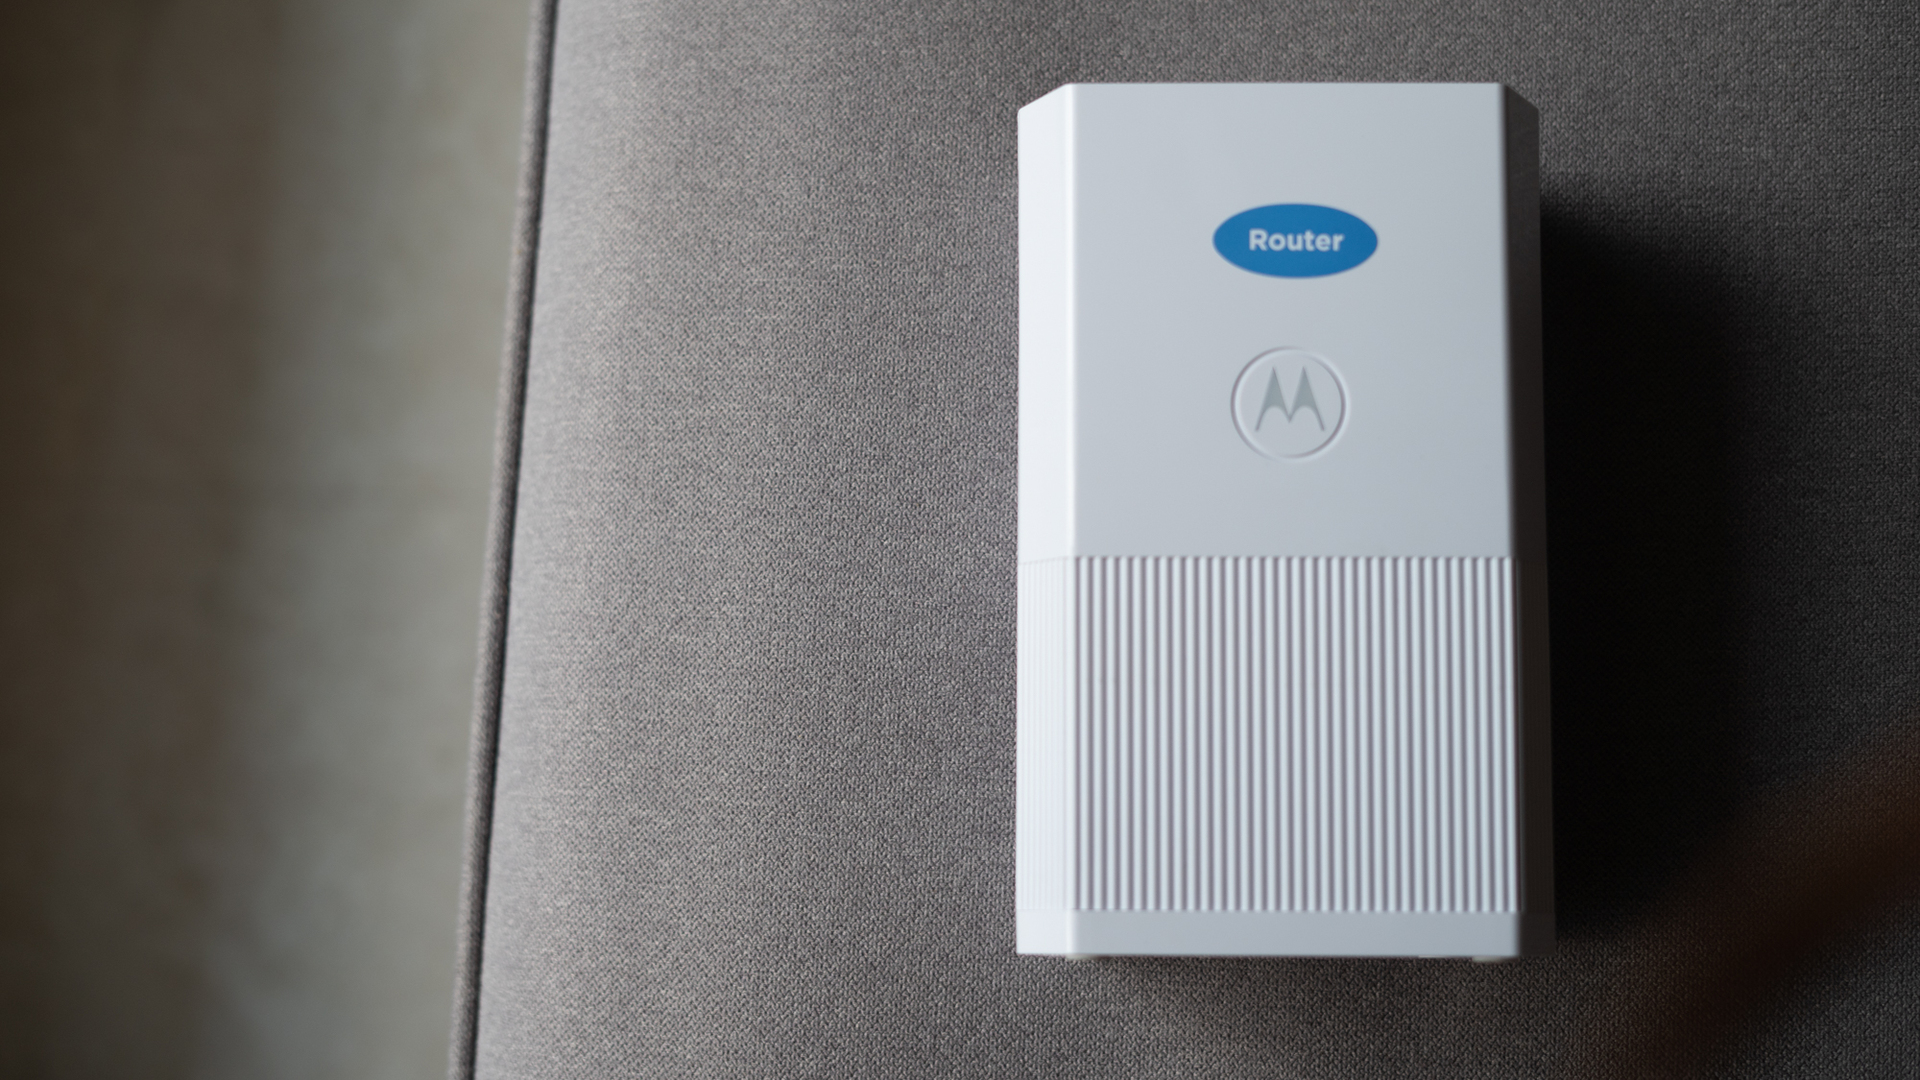 Motorola MH7020 top down view of router